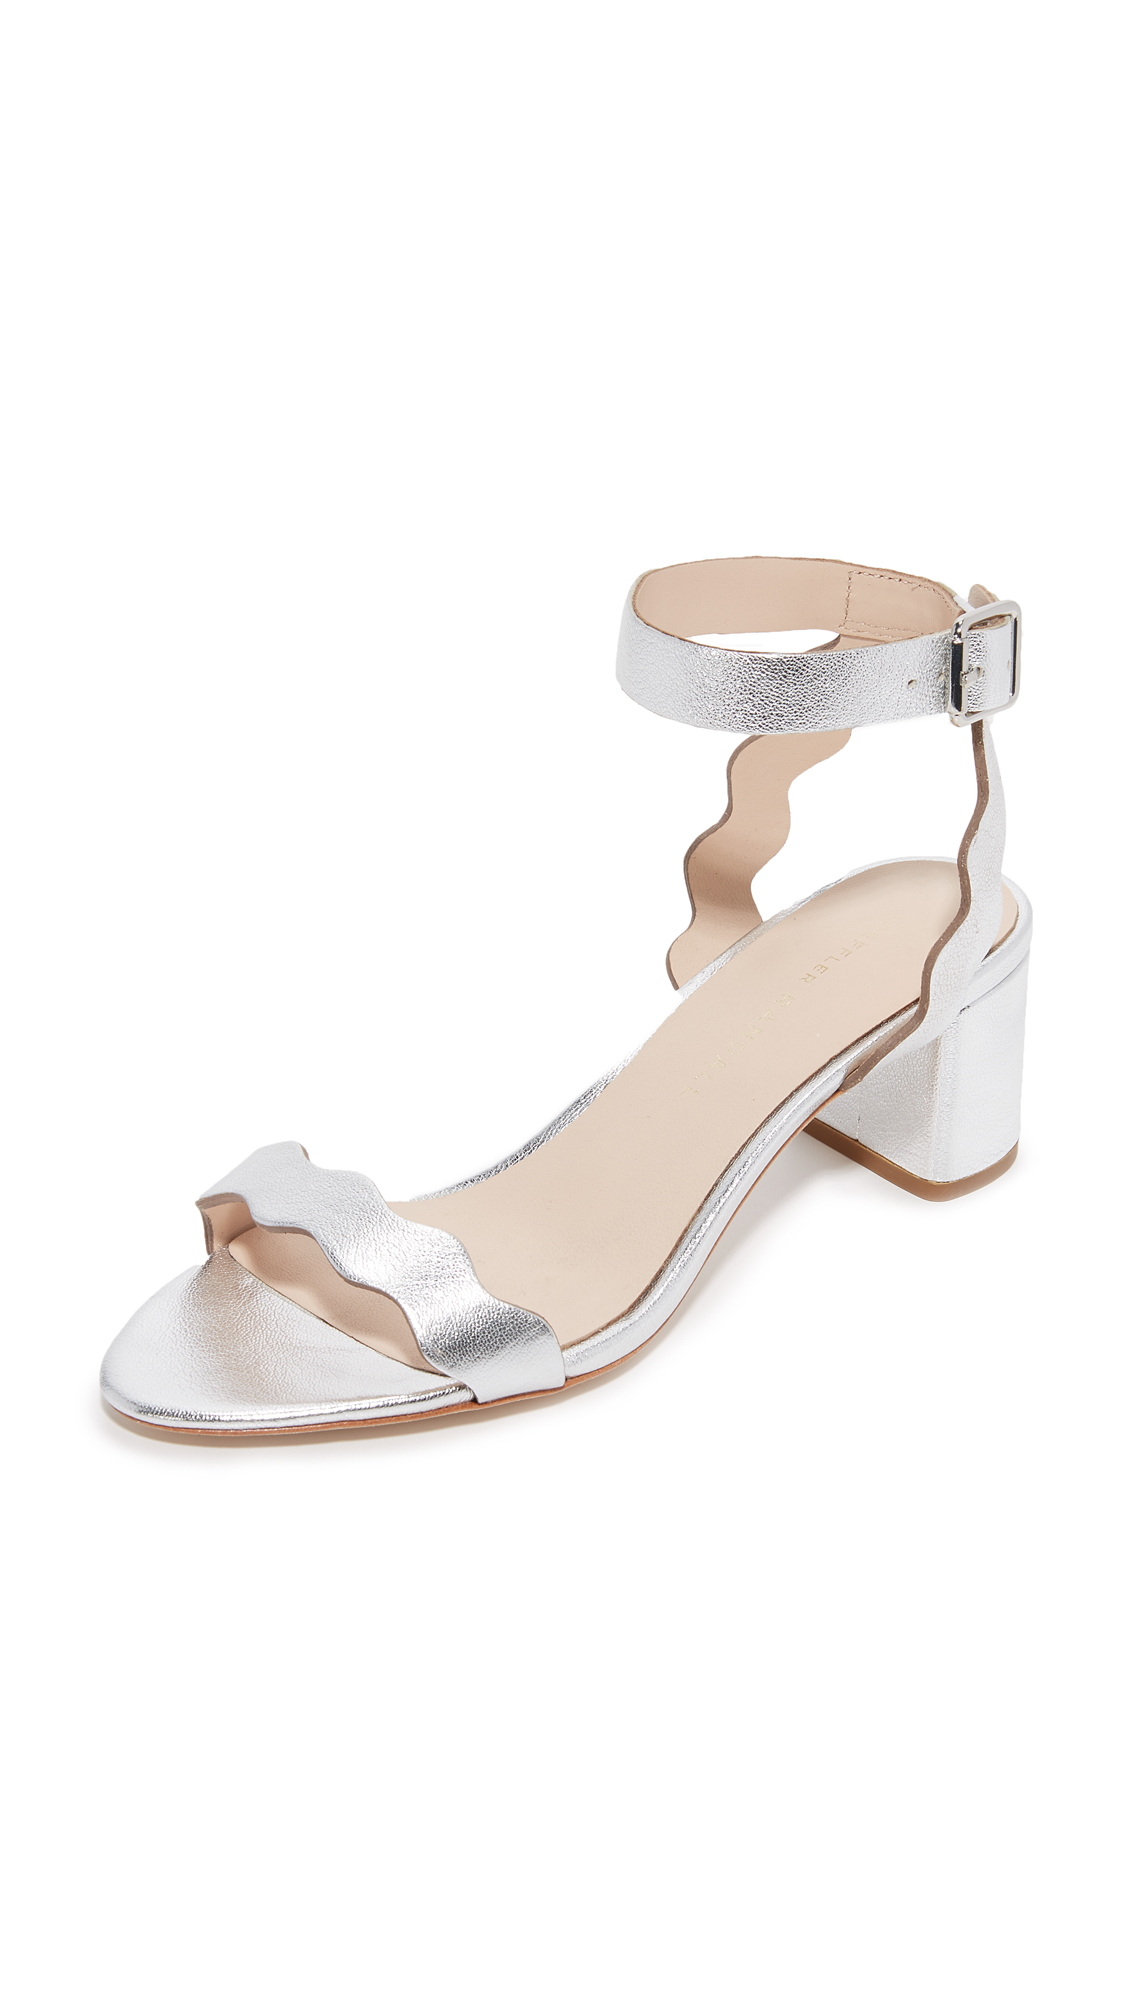 27bc223e37 LOEFFLER RANDALL Emi Scalloped Metallic Leather Block Heel Sandals, Silver